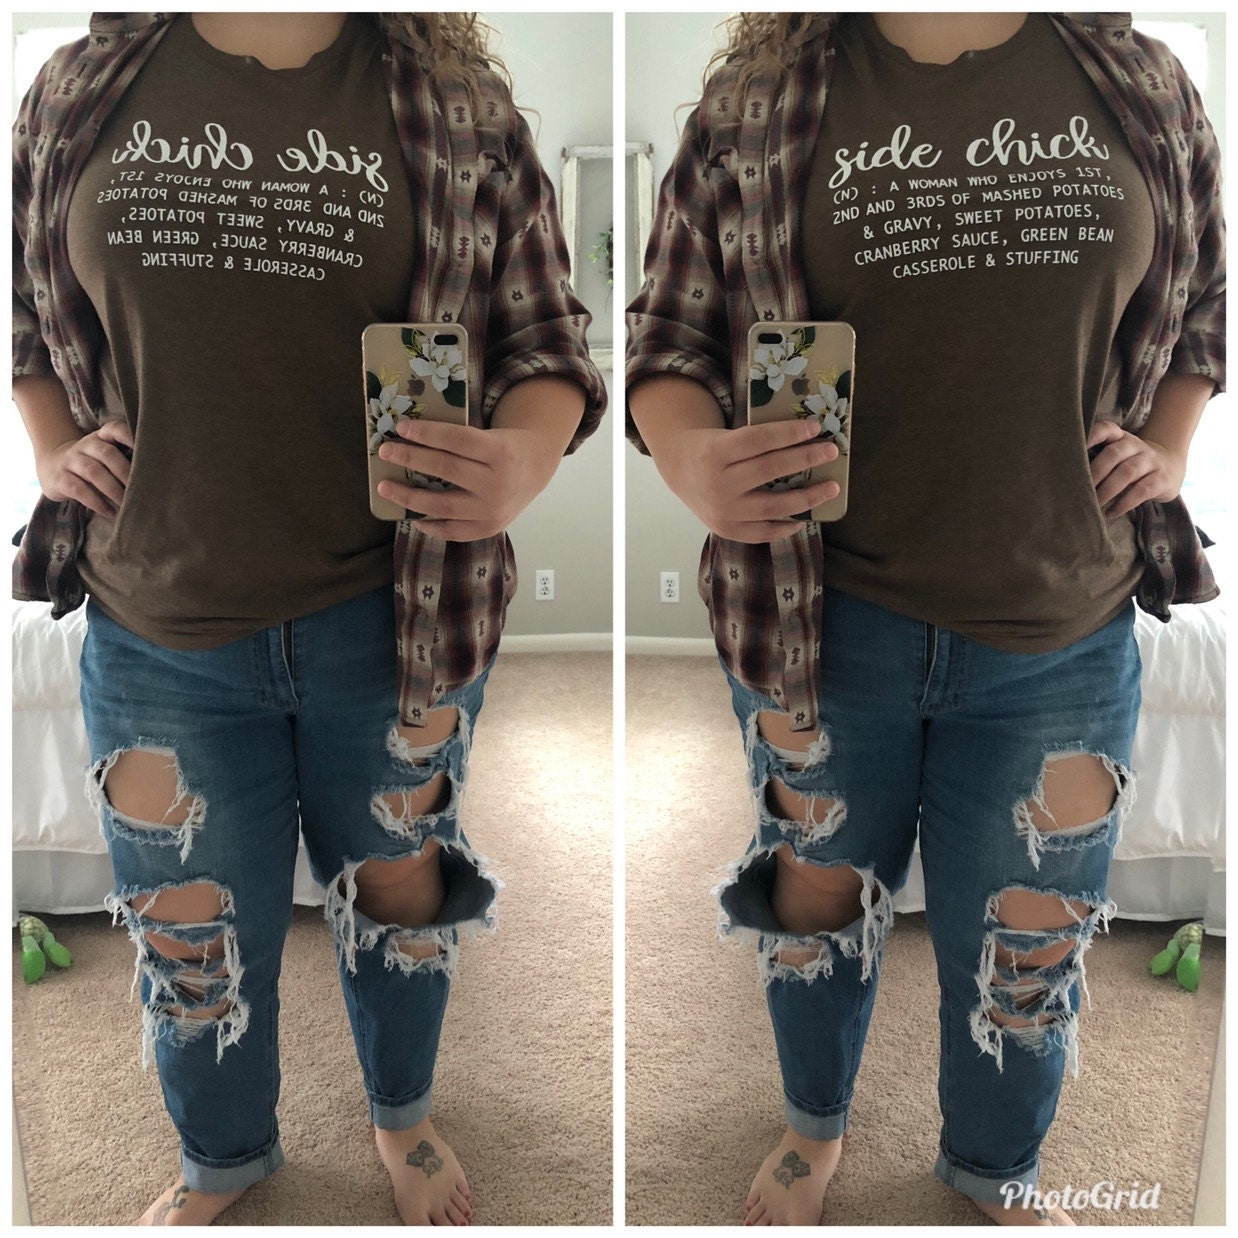 Kayla Westpheling added a photo of their purchase